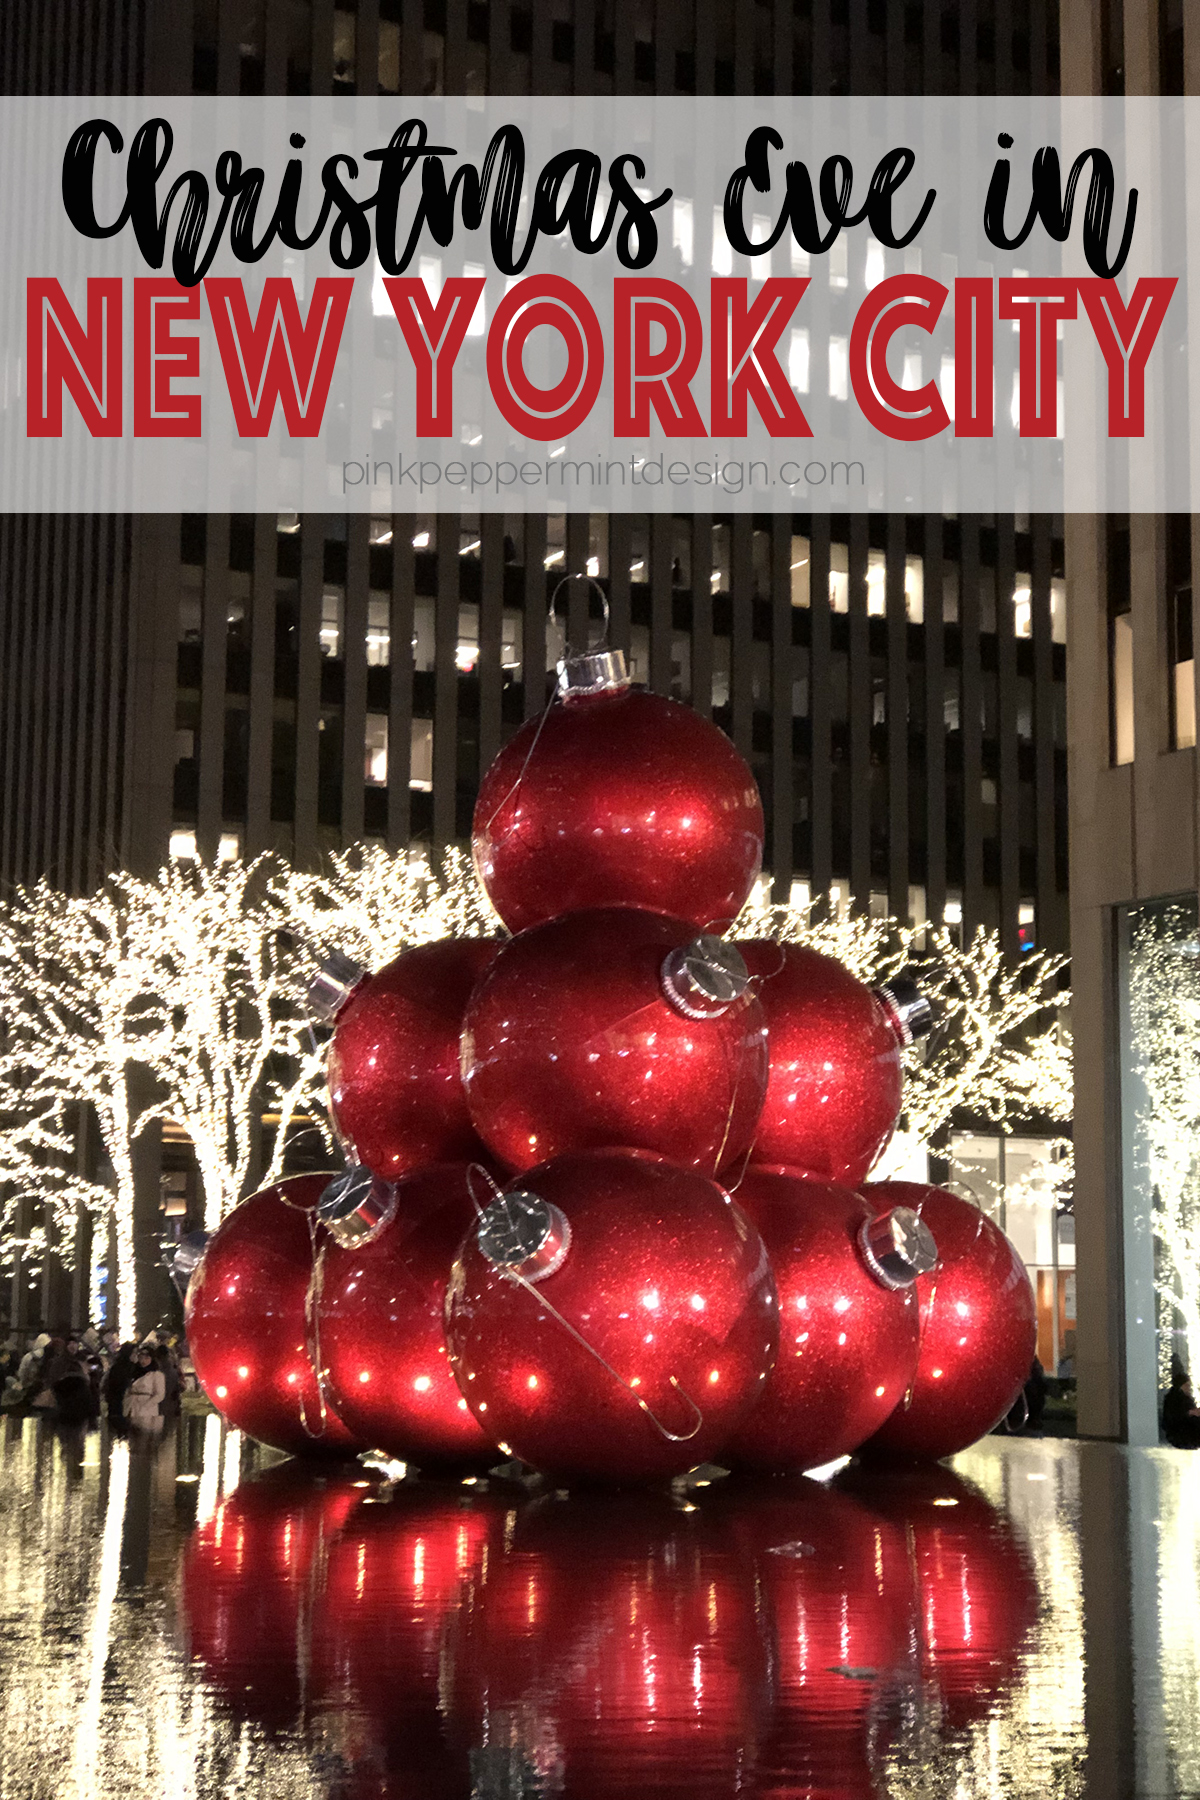 Christmas eve in new york city